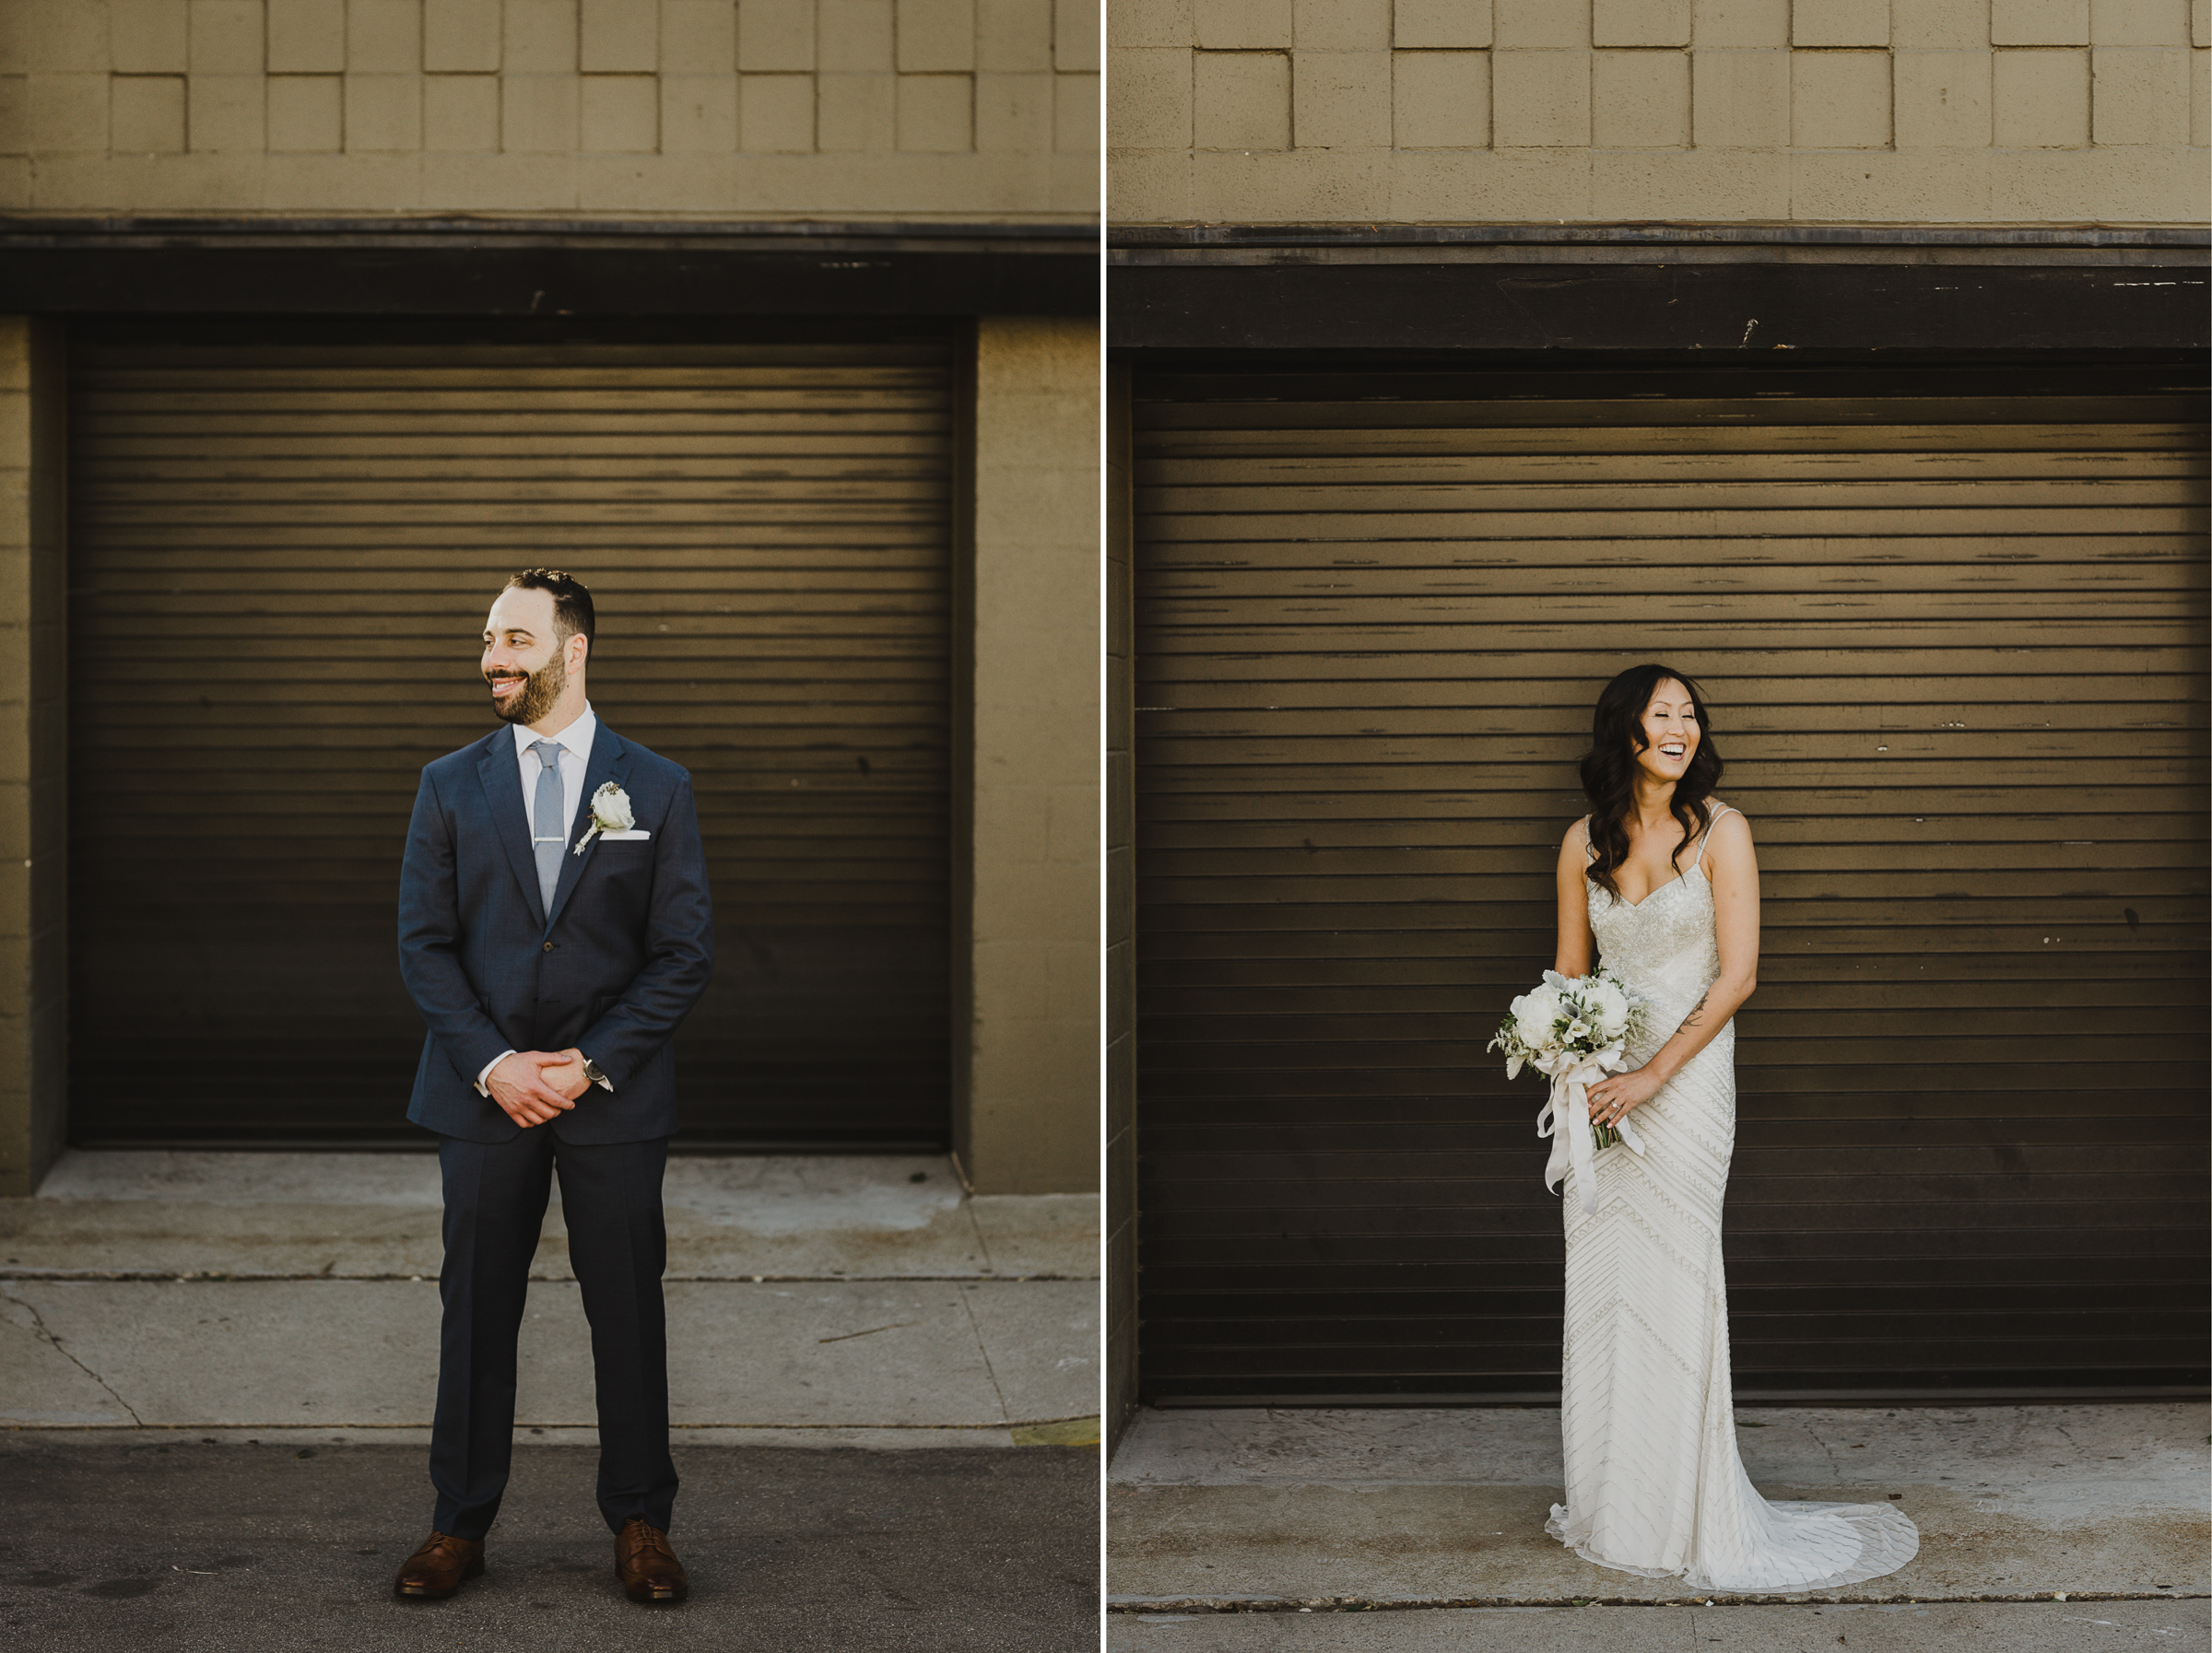 ©Isaiah + Taylor Photography - Big Door Studios Wedding, El Segundo, Los Angeles Wedding Photographer-18.jpg